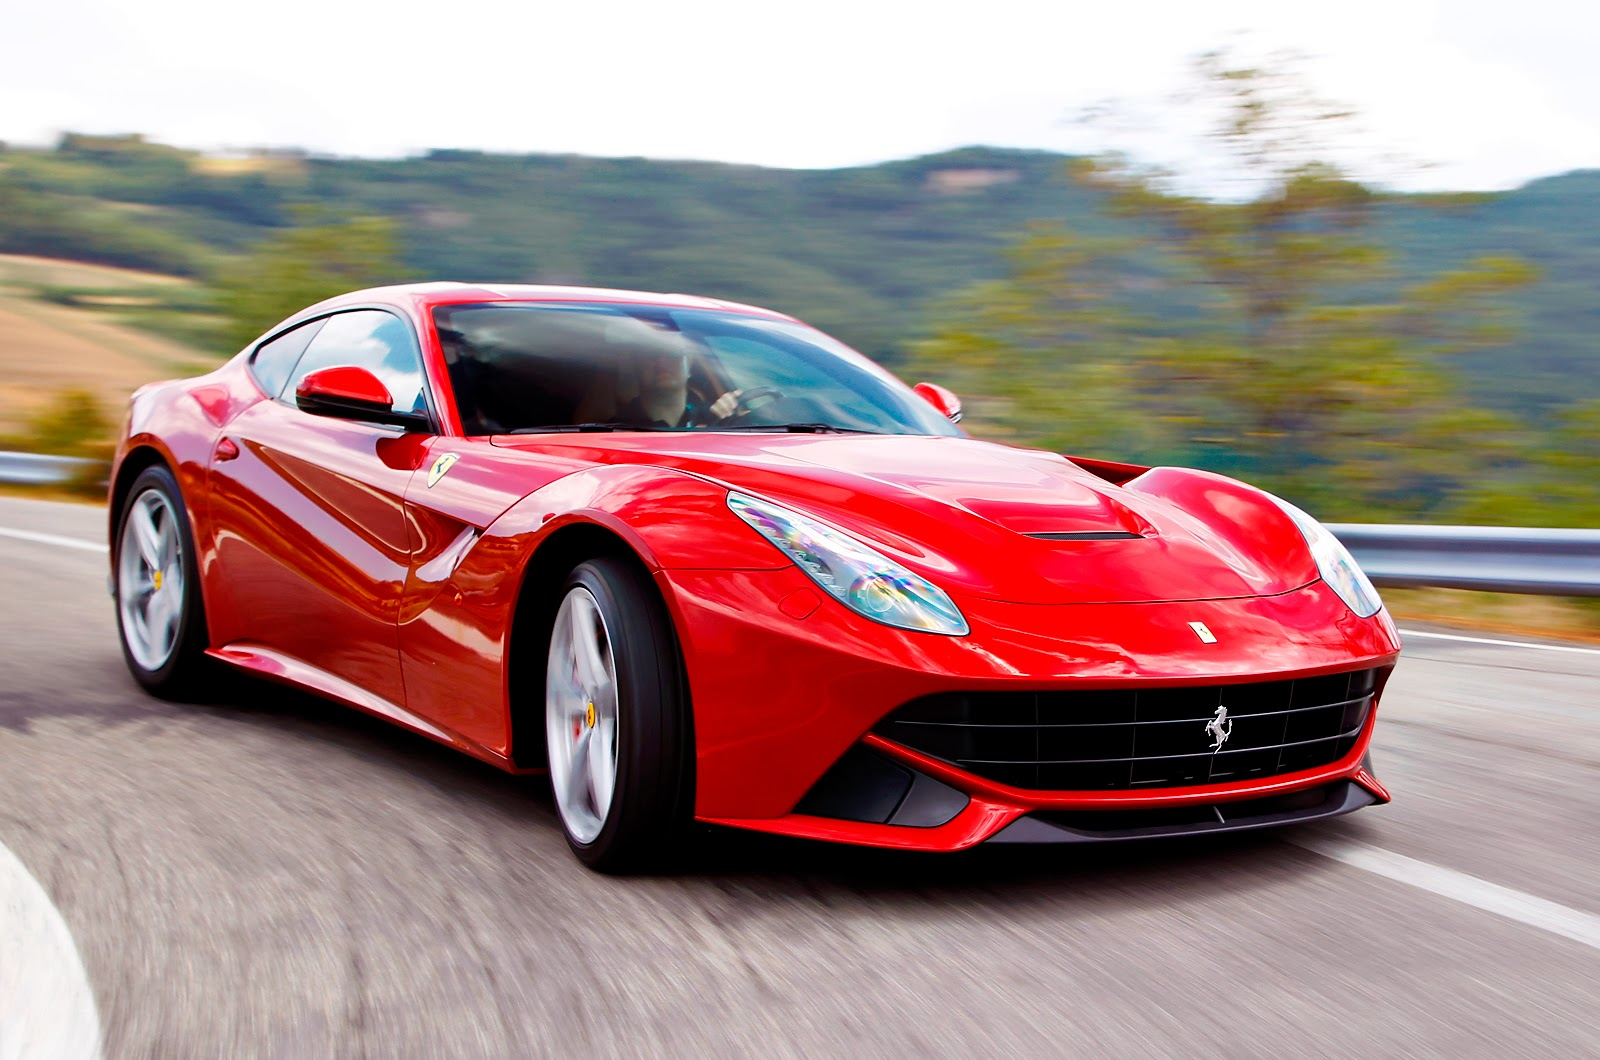 supersport ferrari f12berlinetta mycarzilla. Black Bedroom Furniture Sets. Home Design Ideas